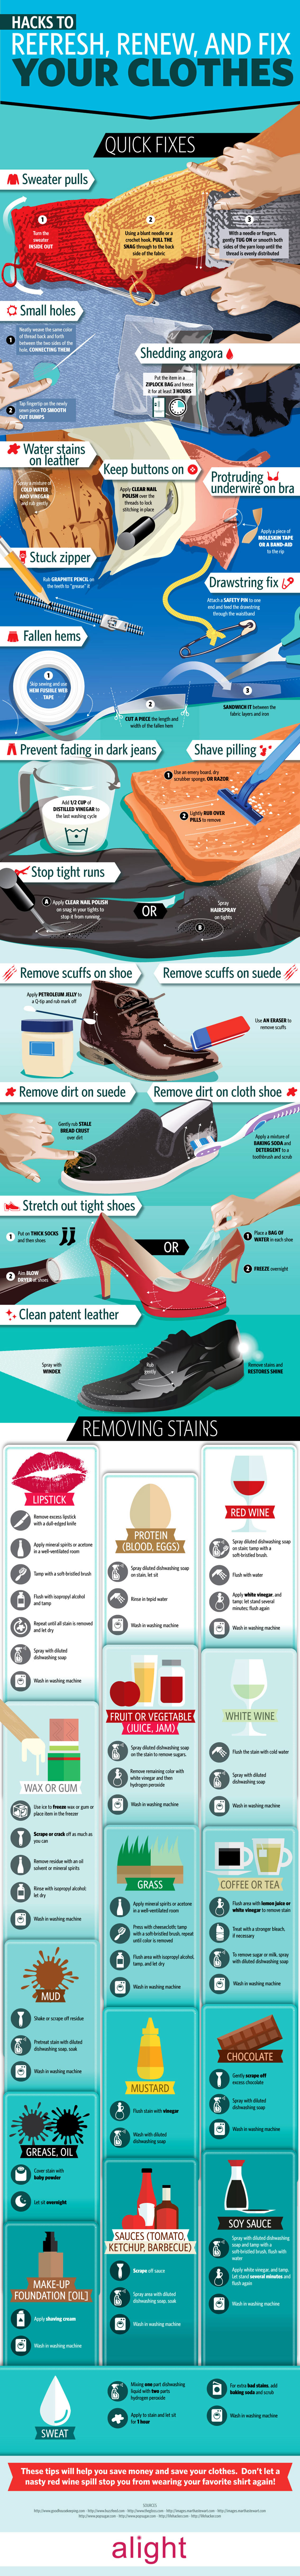 Refresh, Repair and Renew Clothes - Clothing Hacks Infographic